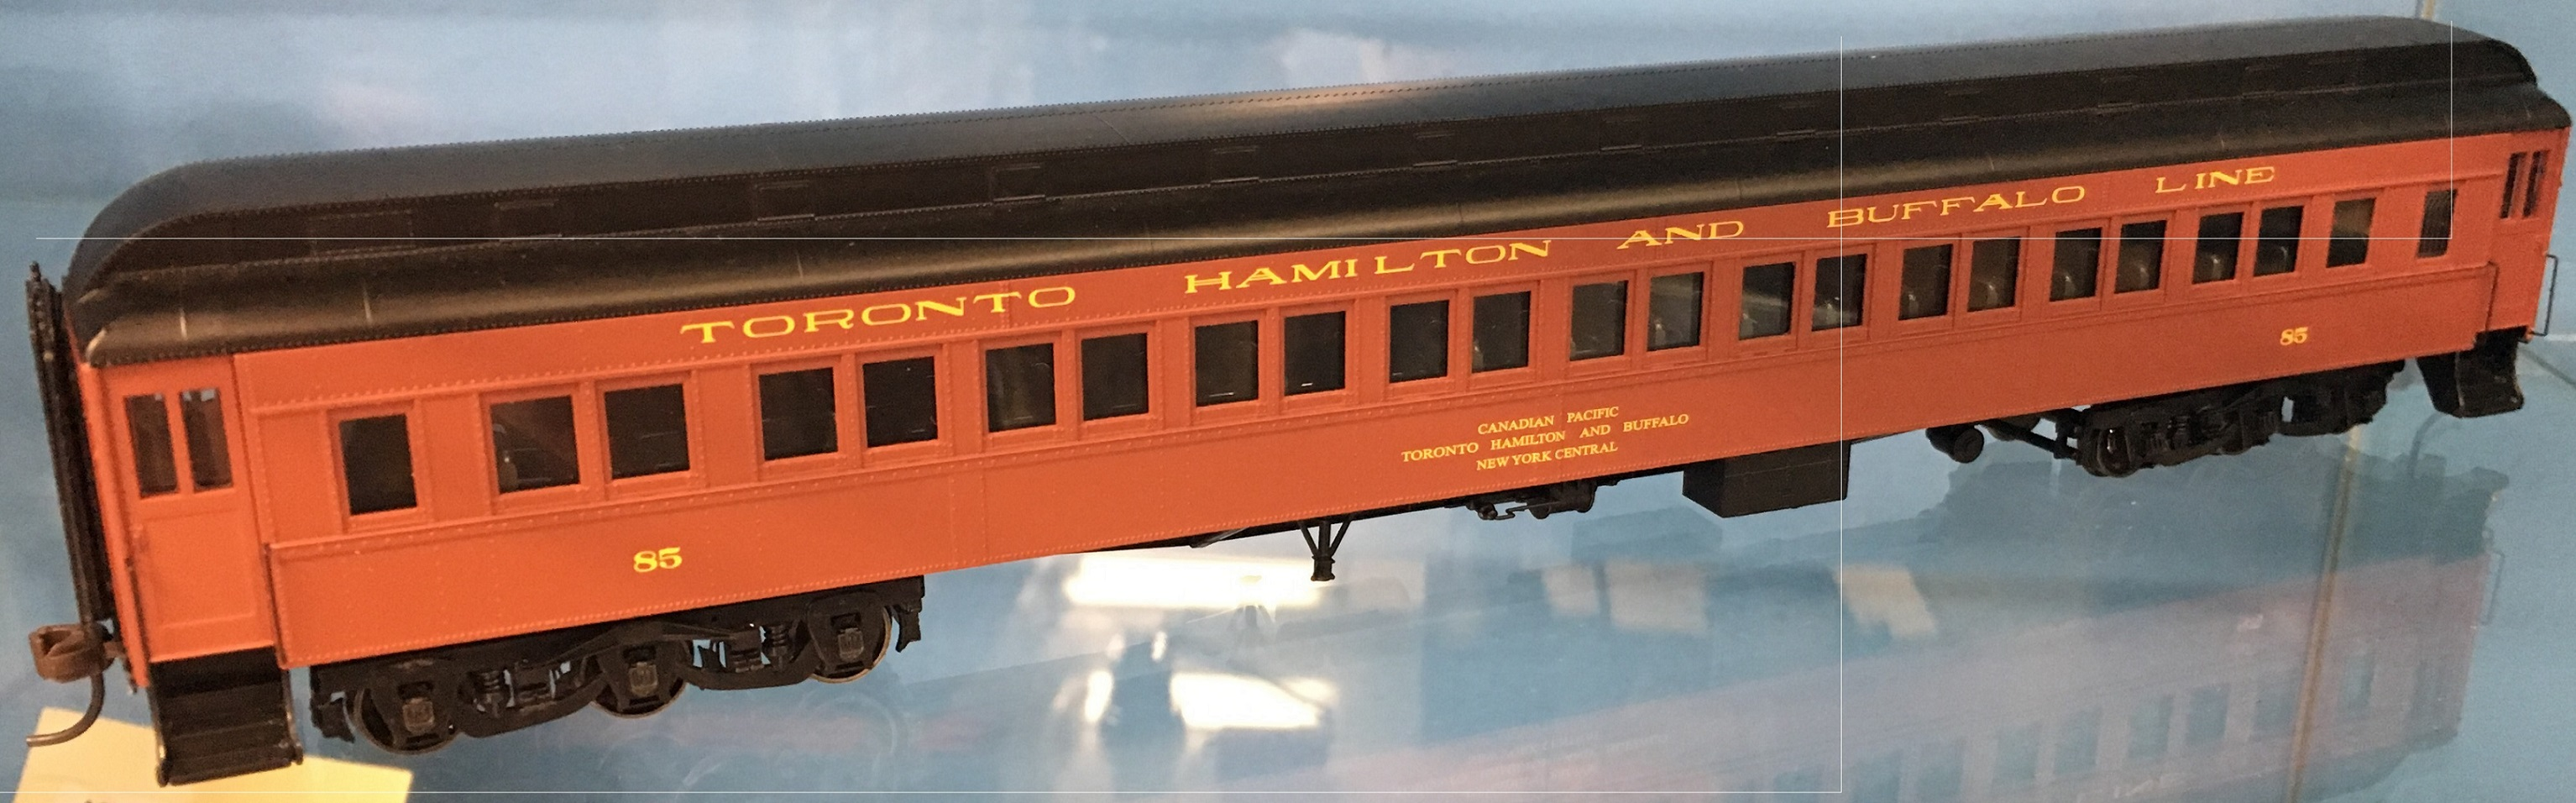 Atlas Model Railroad Co. HO Scale 20004969 Heavyweight Paired-Window Coach - Ready to Run - Master(R) Toronto, Hamilton & Buffalo 85 (maroon, black) 150-20004969